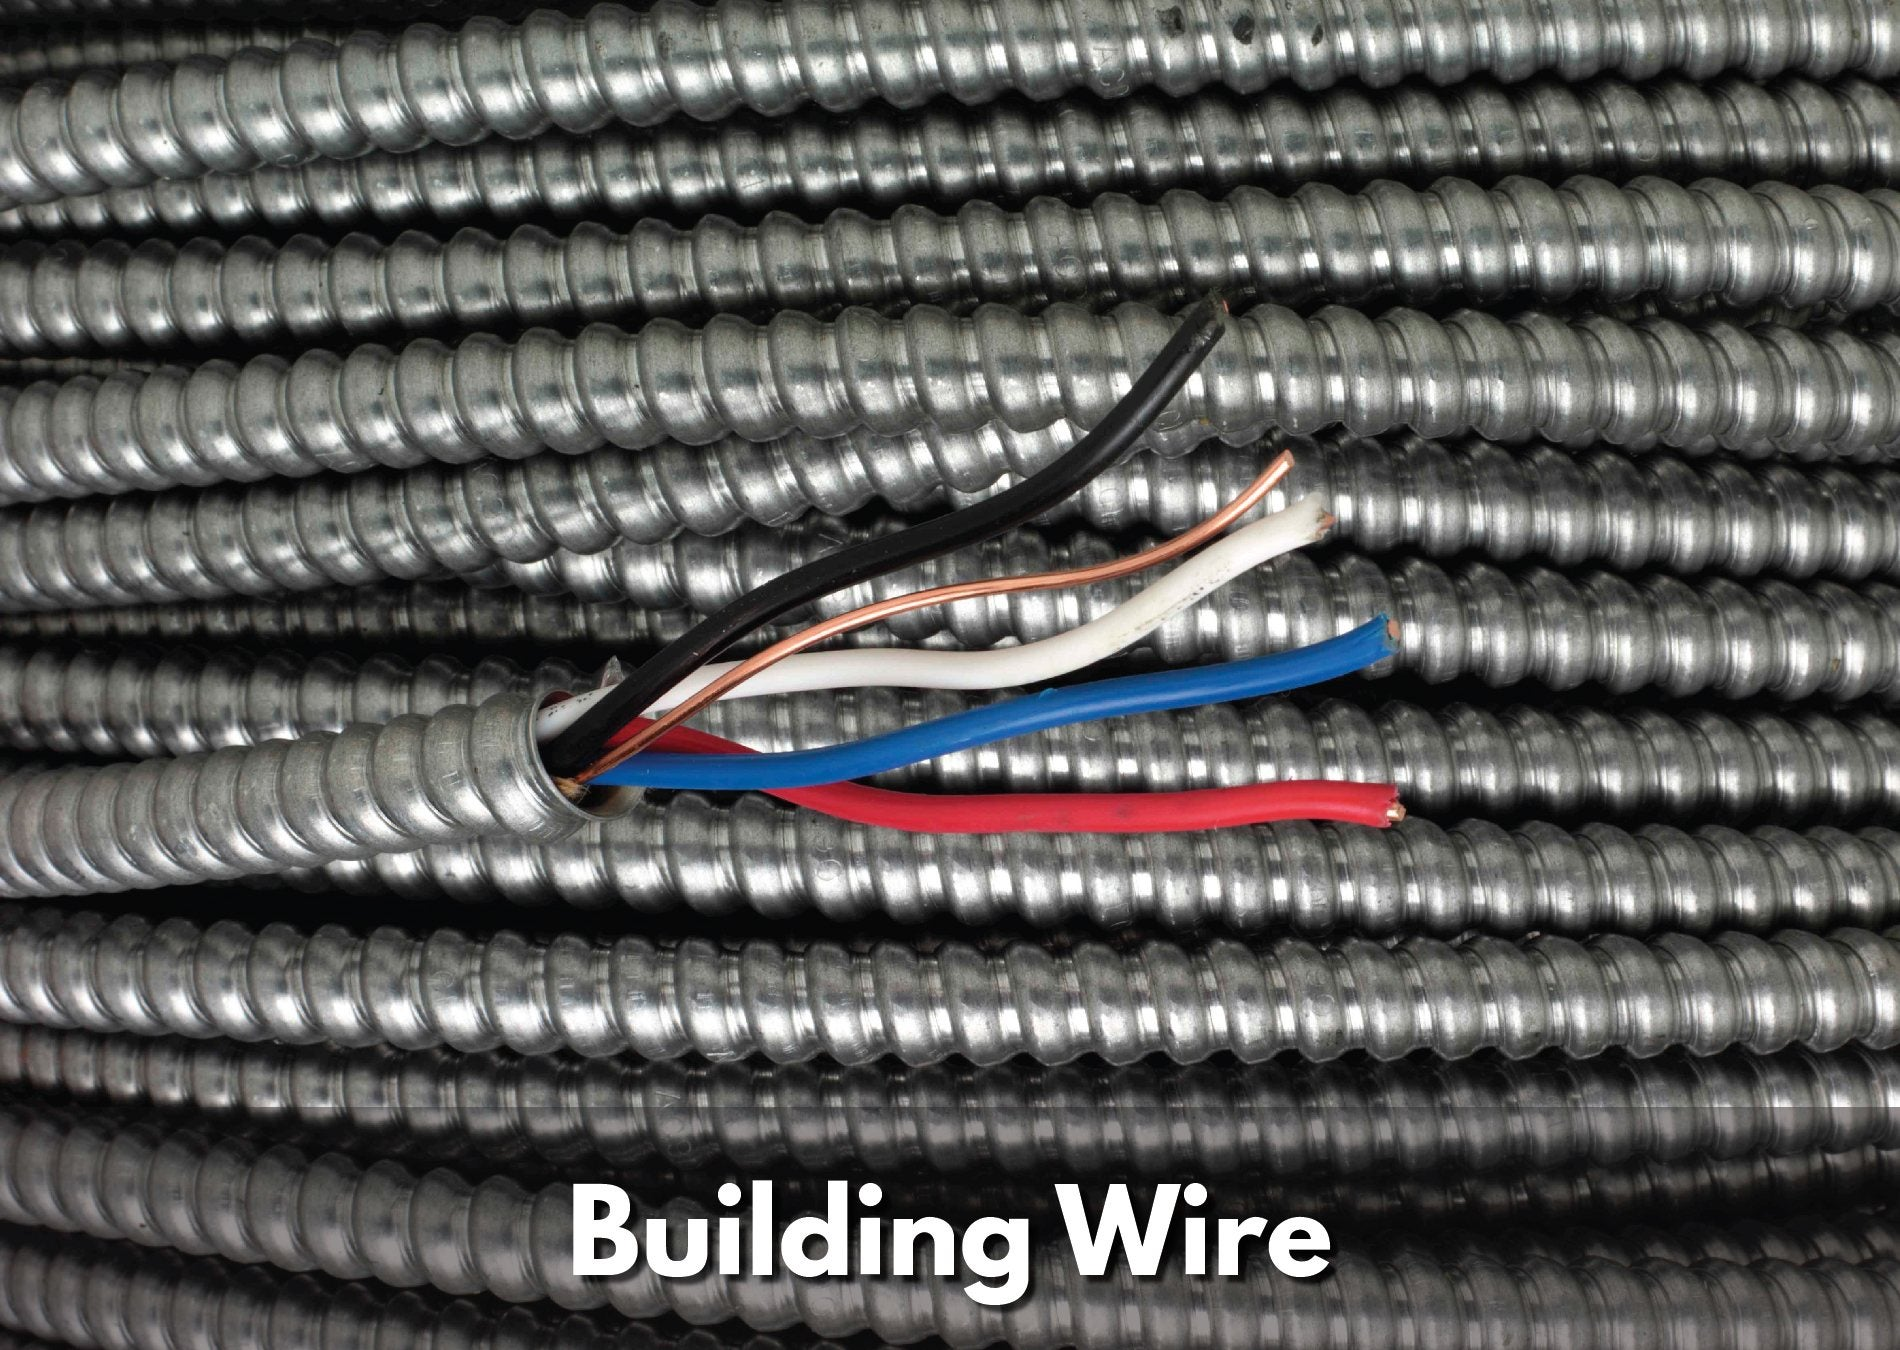 Texcan - View All Products - Building Wire.jpg